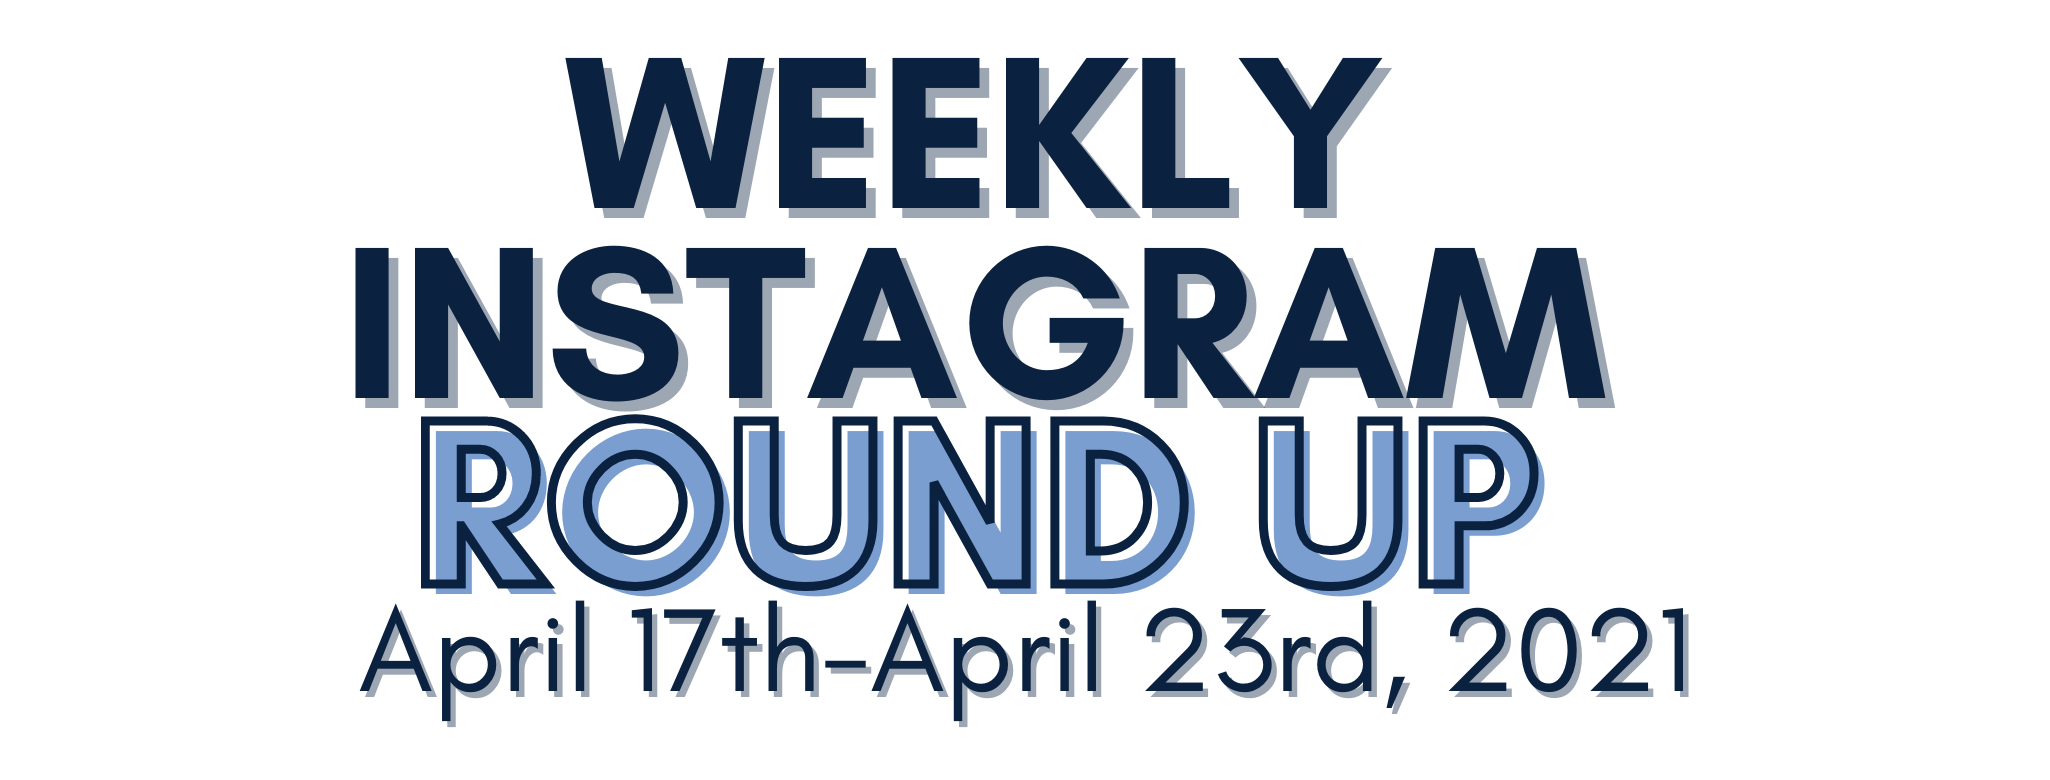 Instagram Round Up 4/17- 4/23